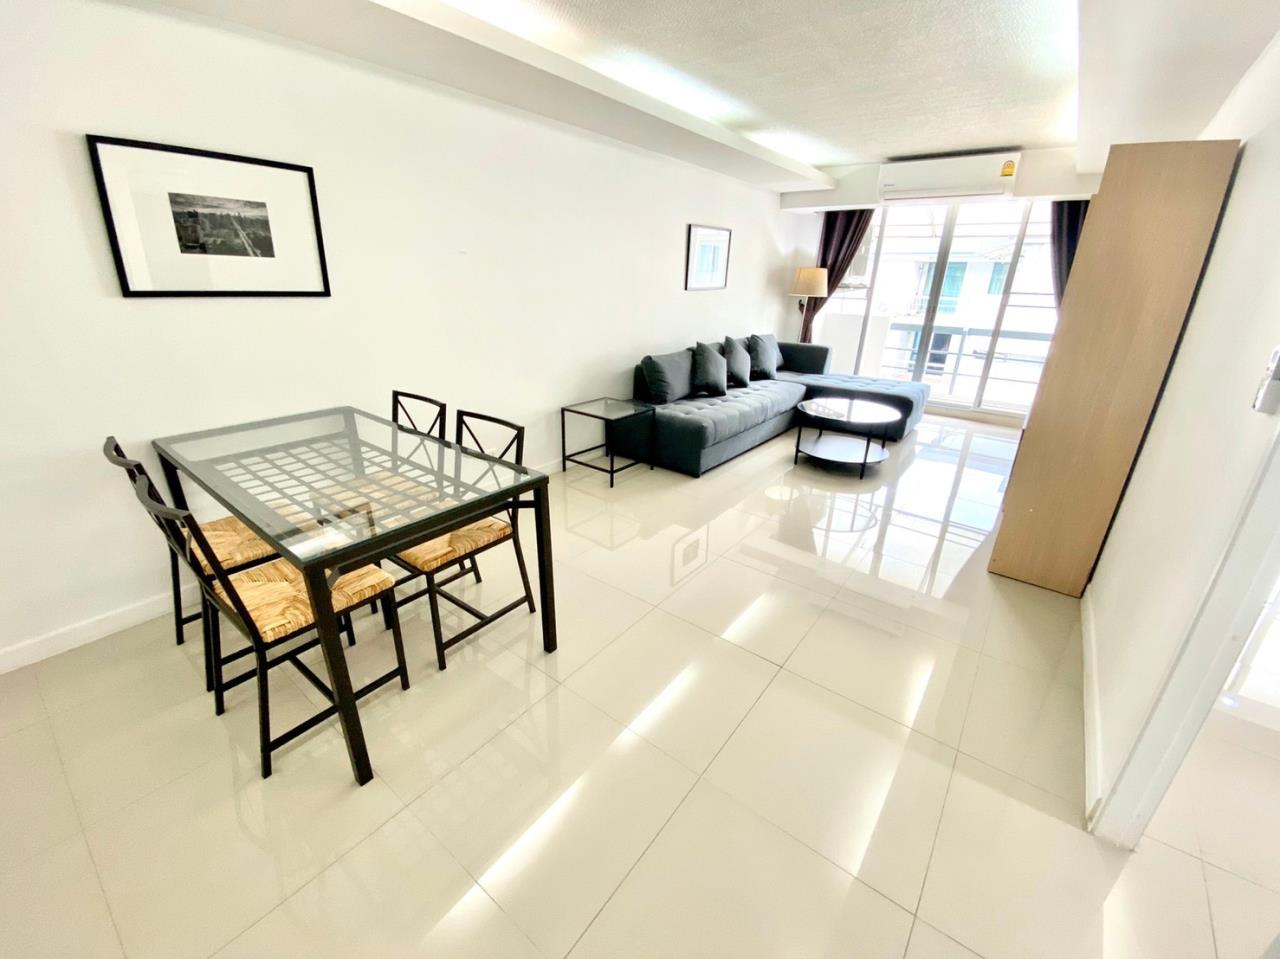 Bestbkkcondos Agency's Waterford 50 2 bedrooms 2 bathrooms 96.8 sqm. 8th Floor for sale 6.582mTHB Rental 28000THB 6